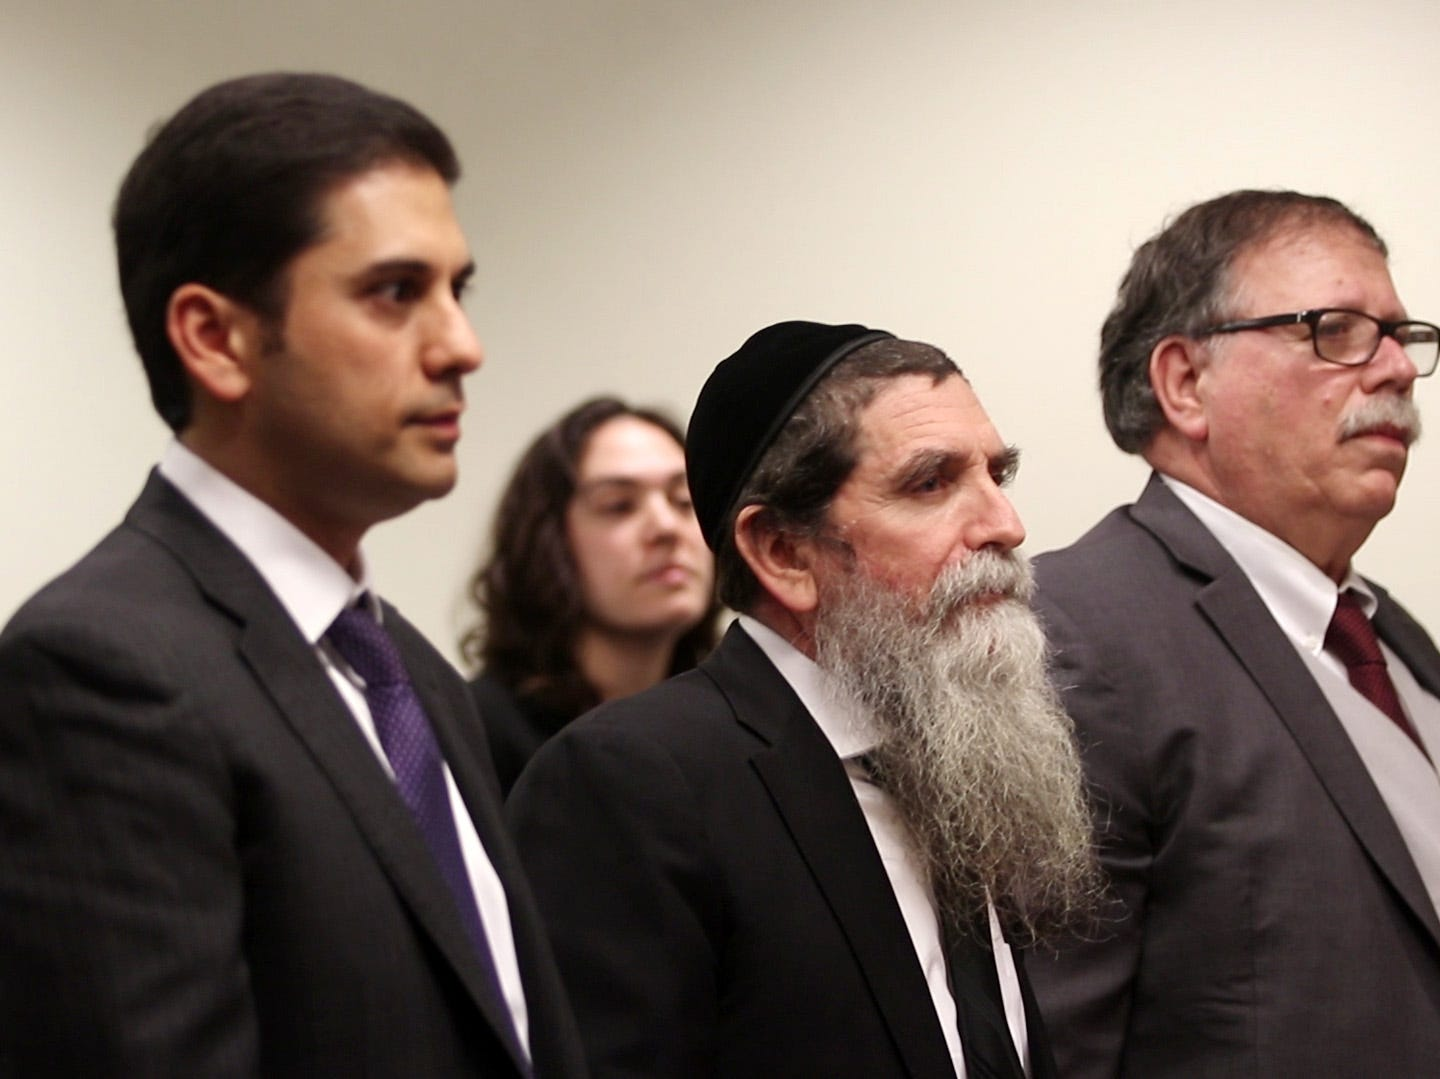 Rabbi Osher Eisemann, founder of Lakewood's School for Children with Hidden Intelligence and who is facing criminal charges alleging misuse of public money, appears before Judge Benjamin Bucca at the Middlesex County Courthouse in New Brunswick, NJ Friday, November 16, 2018.  His lawyer, Lee Vartan, is arguing the indictment should be dismissed because an amount equal to the taxpayer dollars allotted to the school was spent on legitimate purchases.